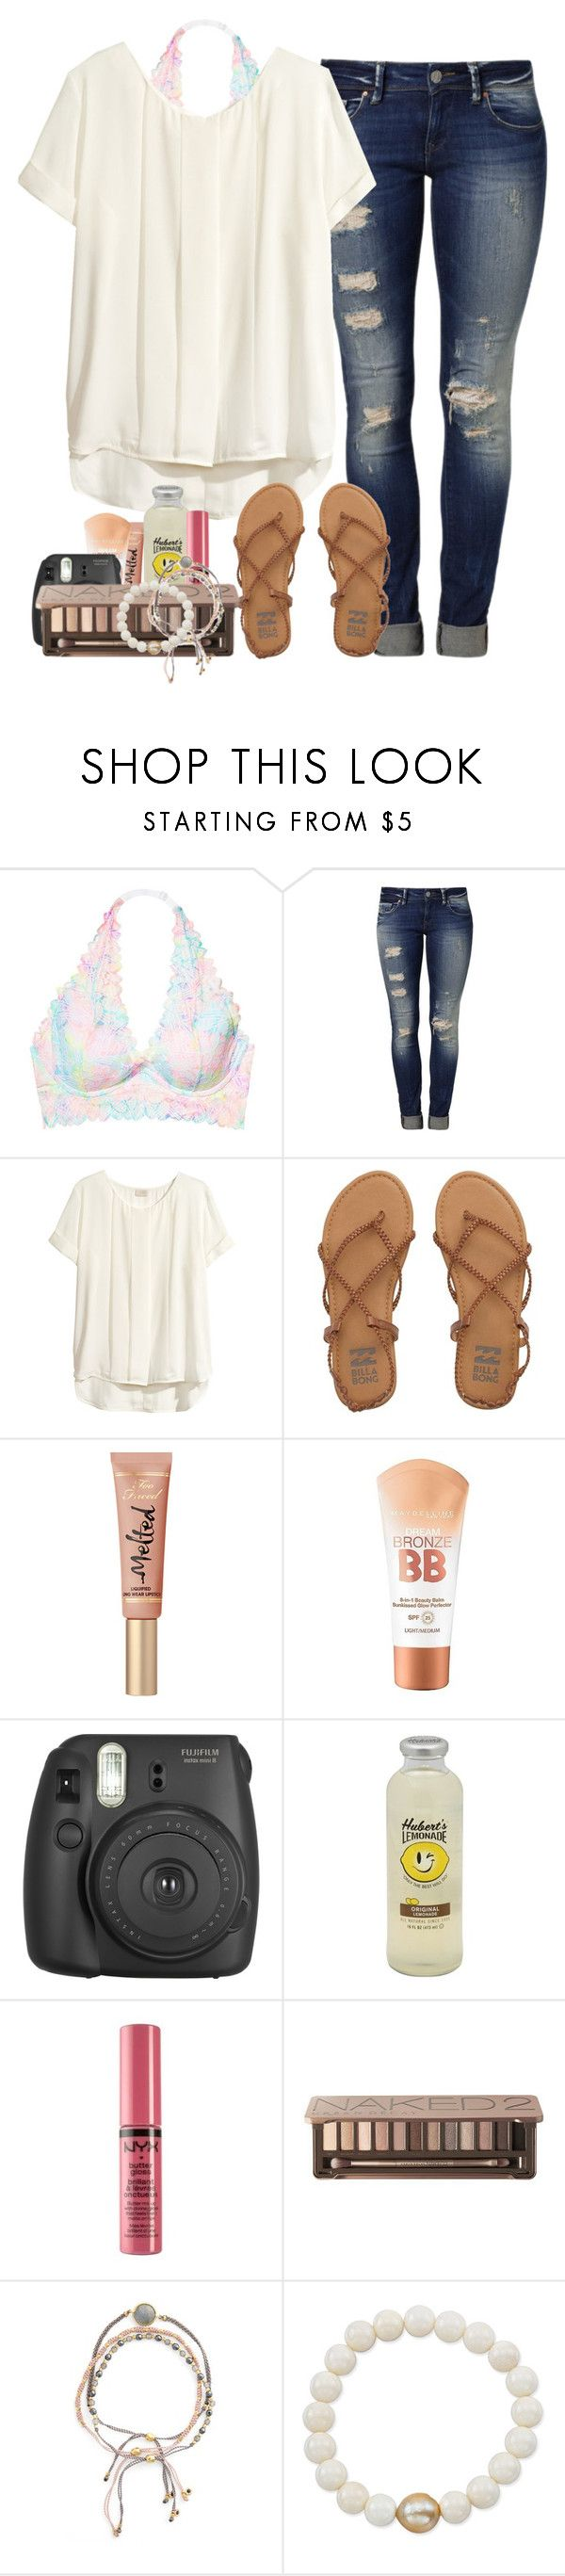 """Only fools rush in"" by labures on Polyvore featuring Victoria's Secret, Mavi, H&M, Billabong, Maybelline, Fujifilm, NYX, Urban Decay, Astley Clarke and Anne Sisteron"